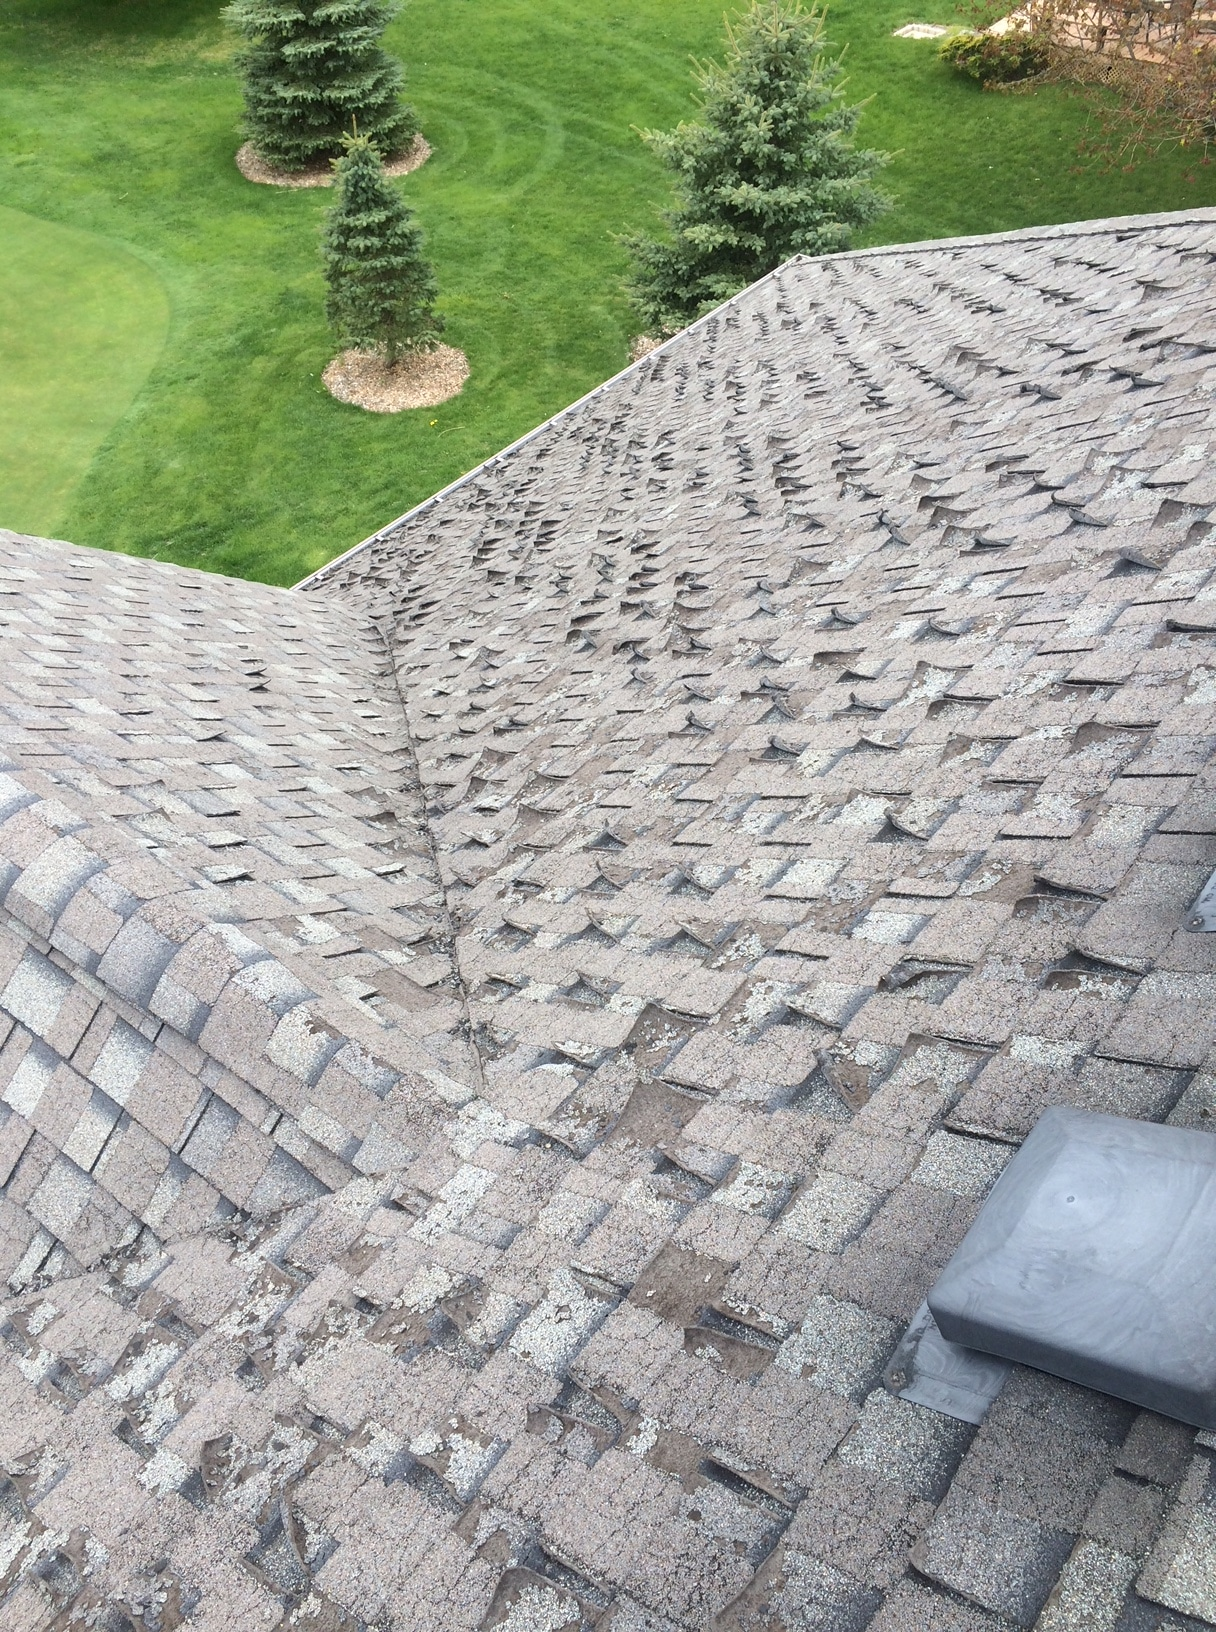 Deteriorated shingles residential home Pickering